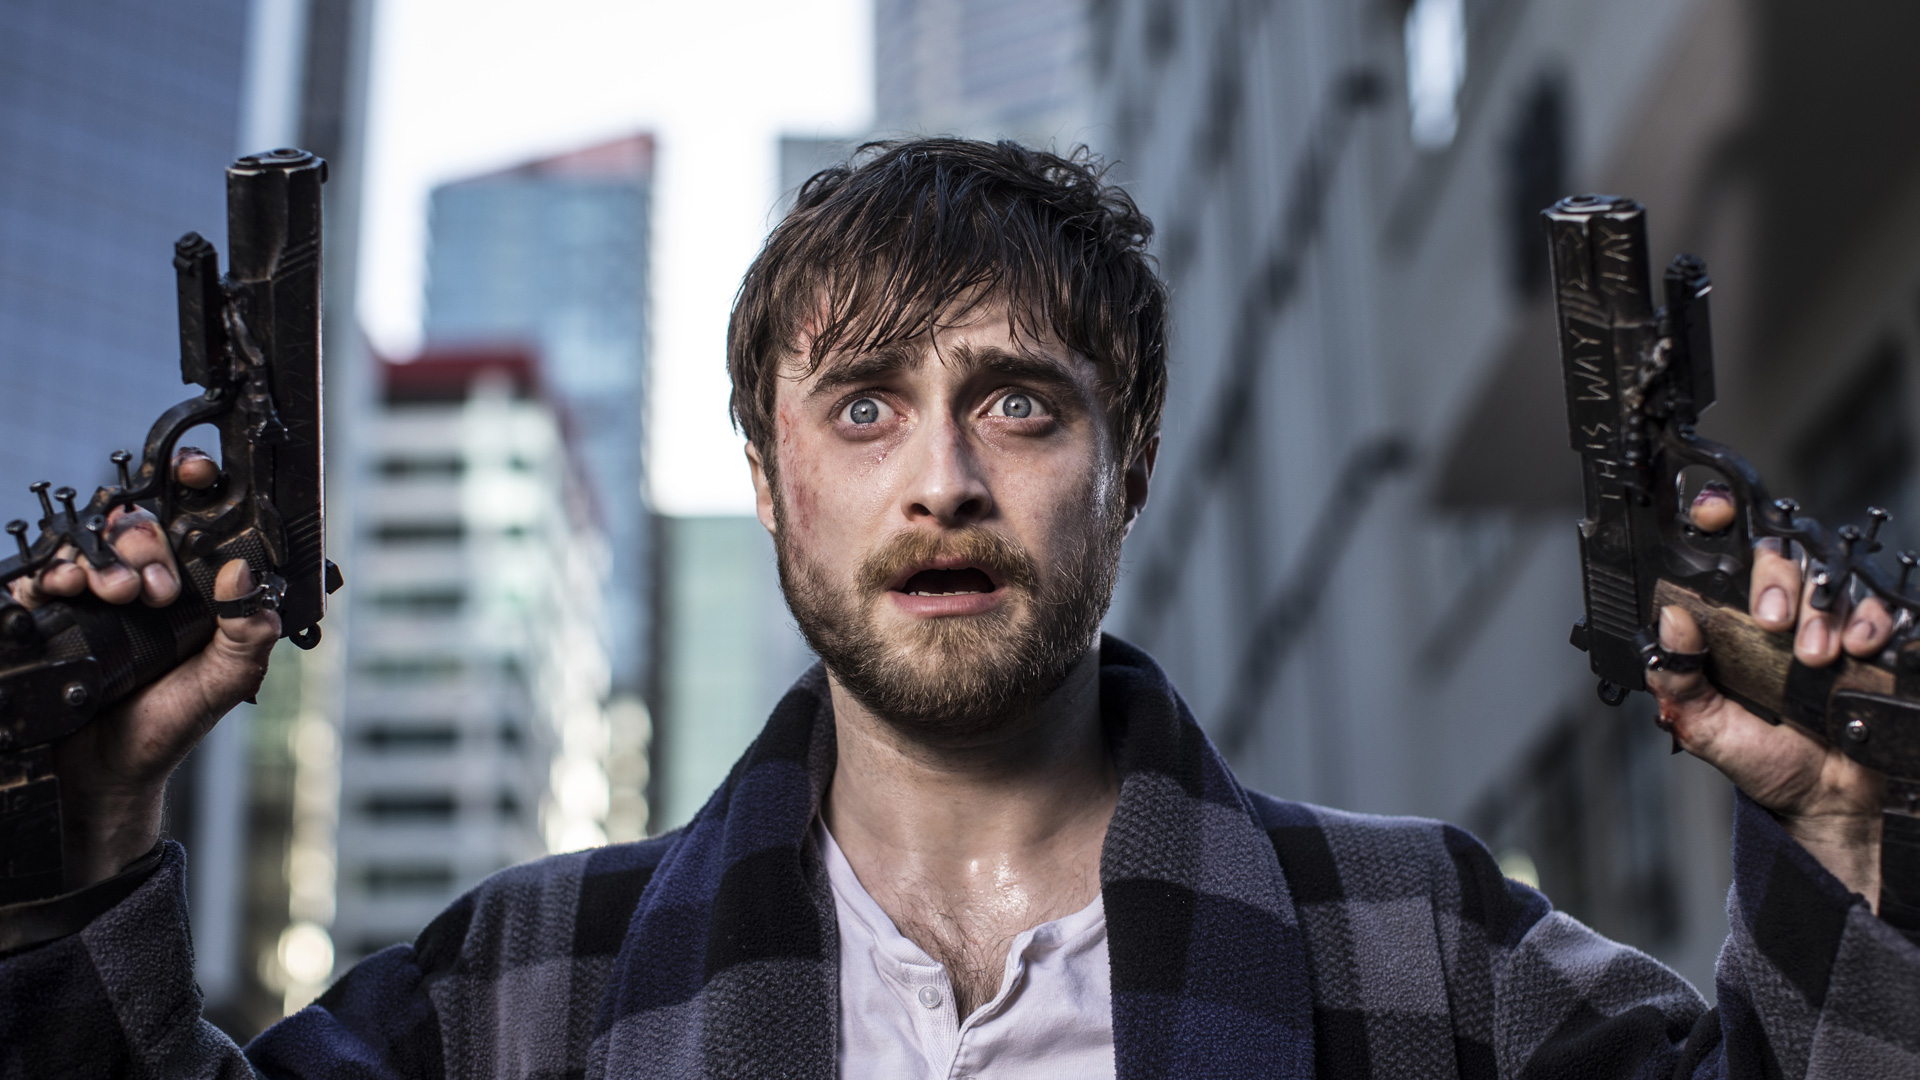 Trailer: Daniel Radcliffe has guns bolted to his hands in Guns Akimbo